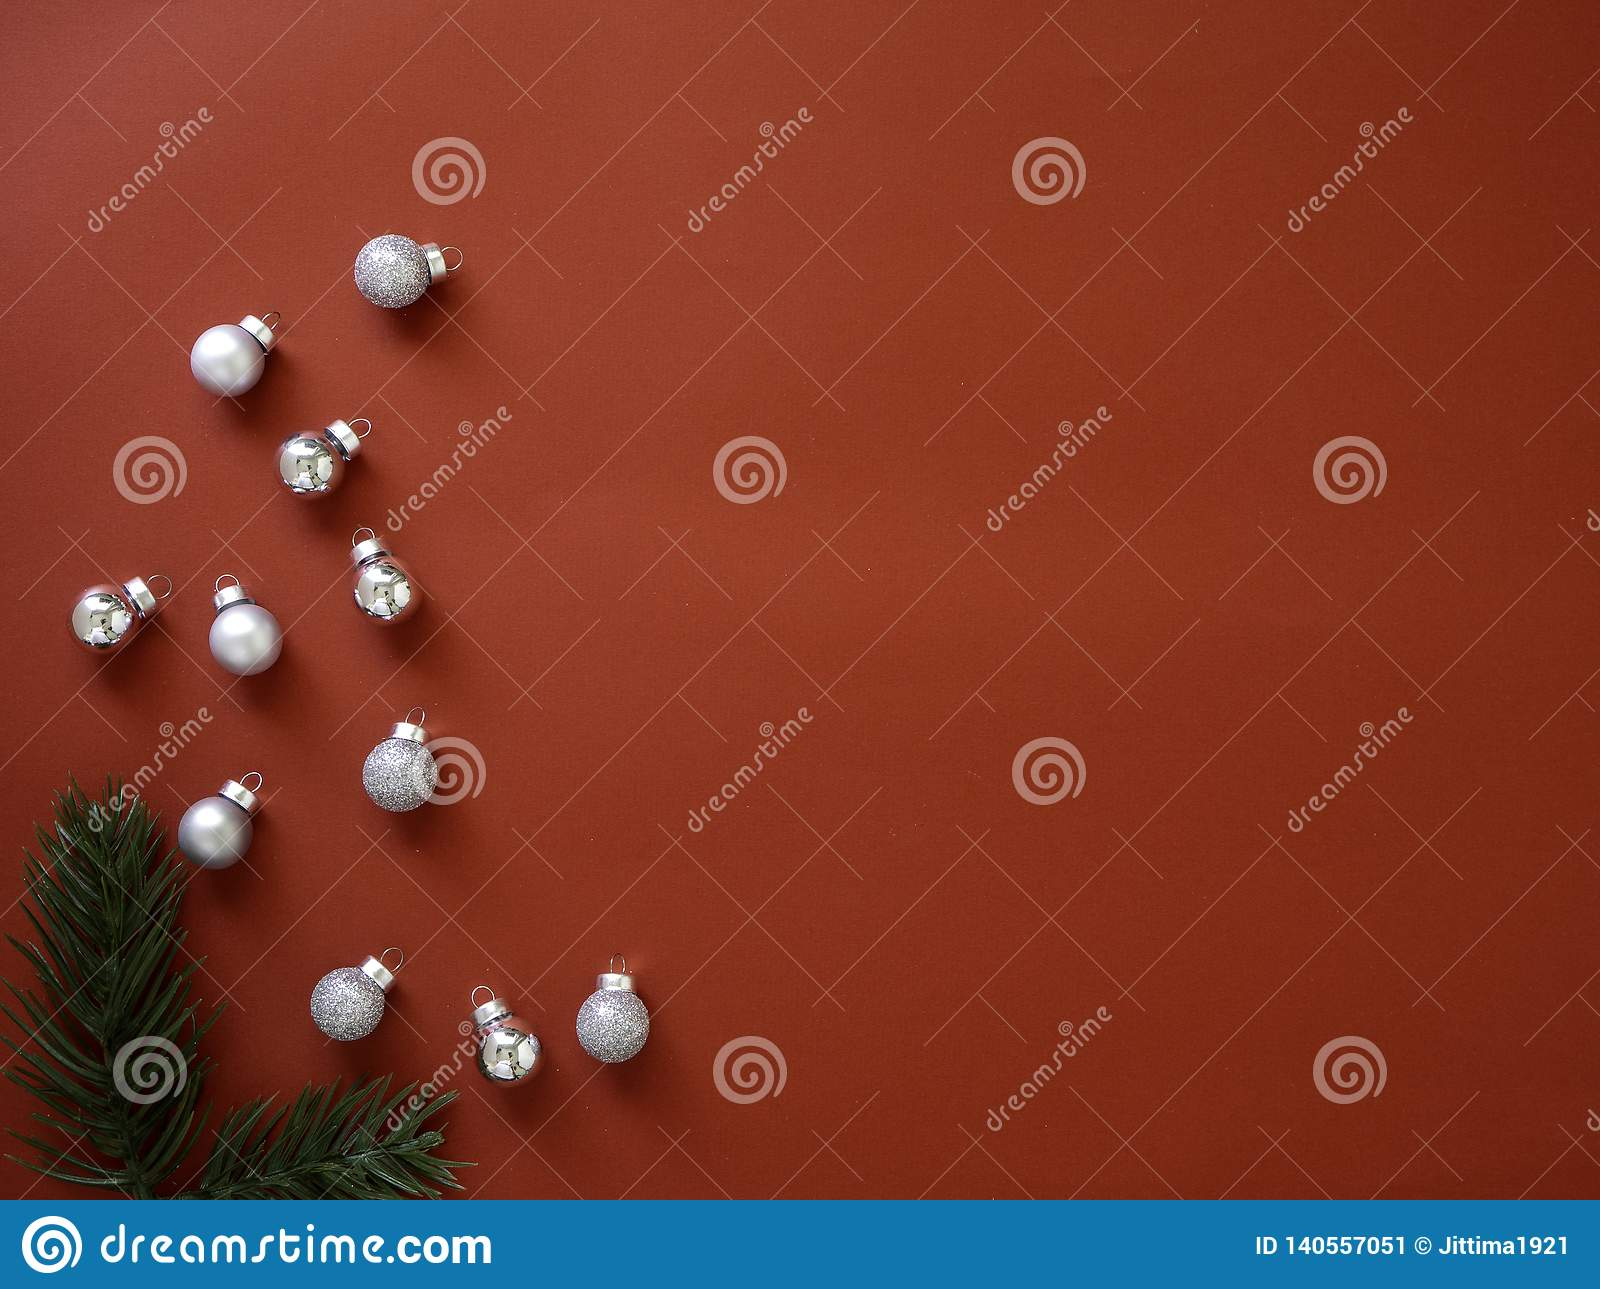 Decorate Christmas and New Year on red background